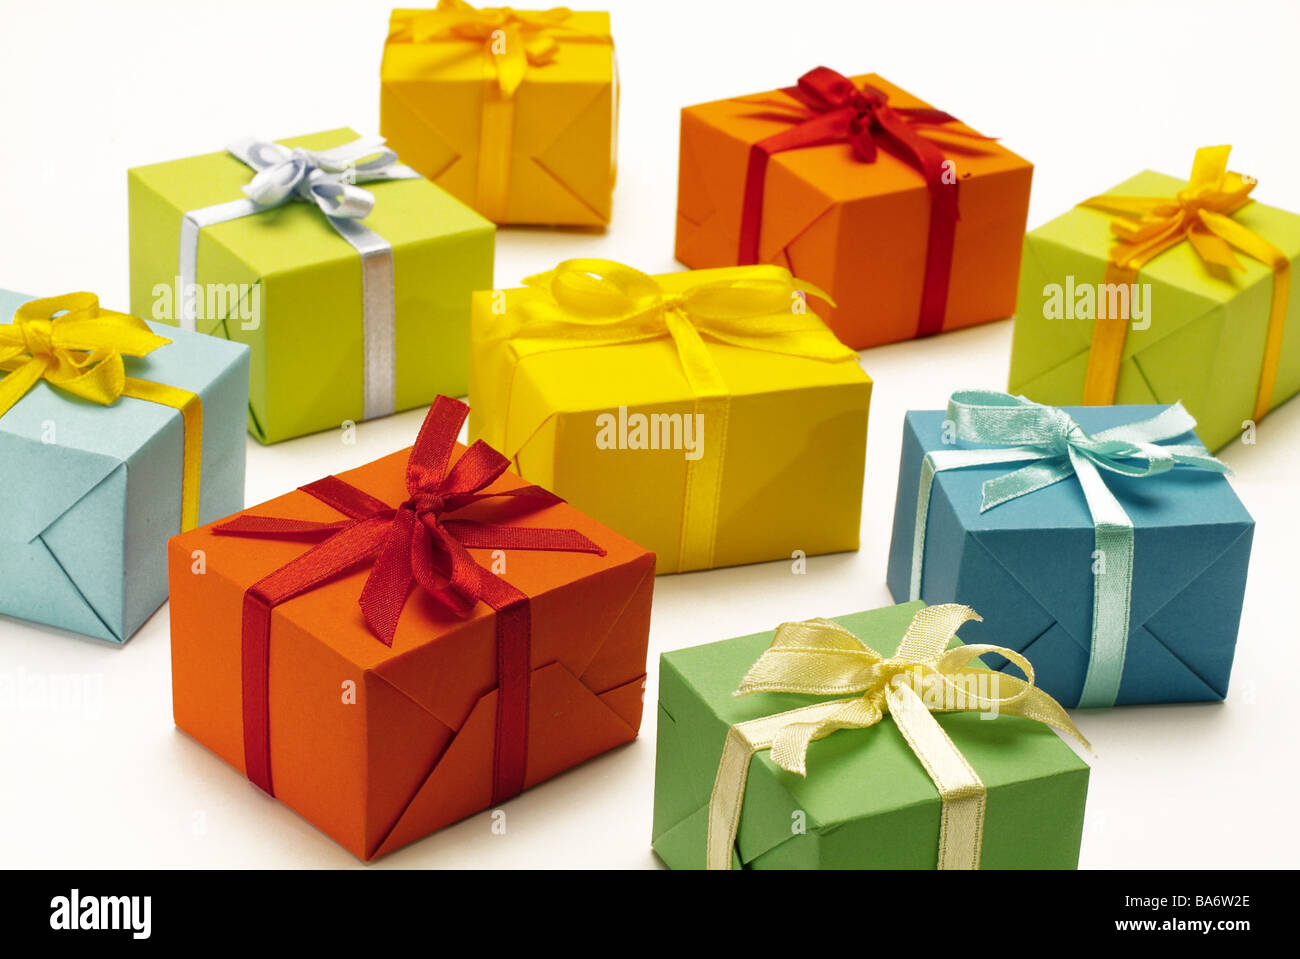 Gifts packs colorfully differently geschenpakete package packet gifts packs colorfully differently geschenpakete package packet boxes bows colorfully differently colorfully many decoration negle Choice Image